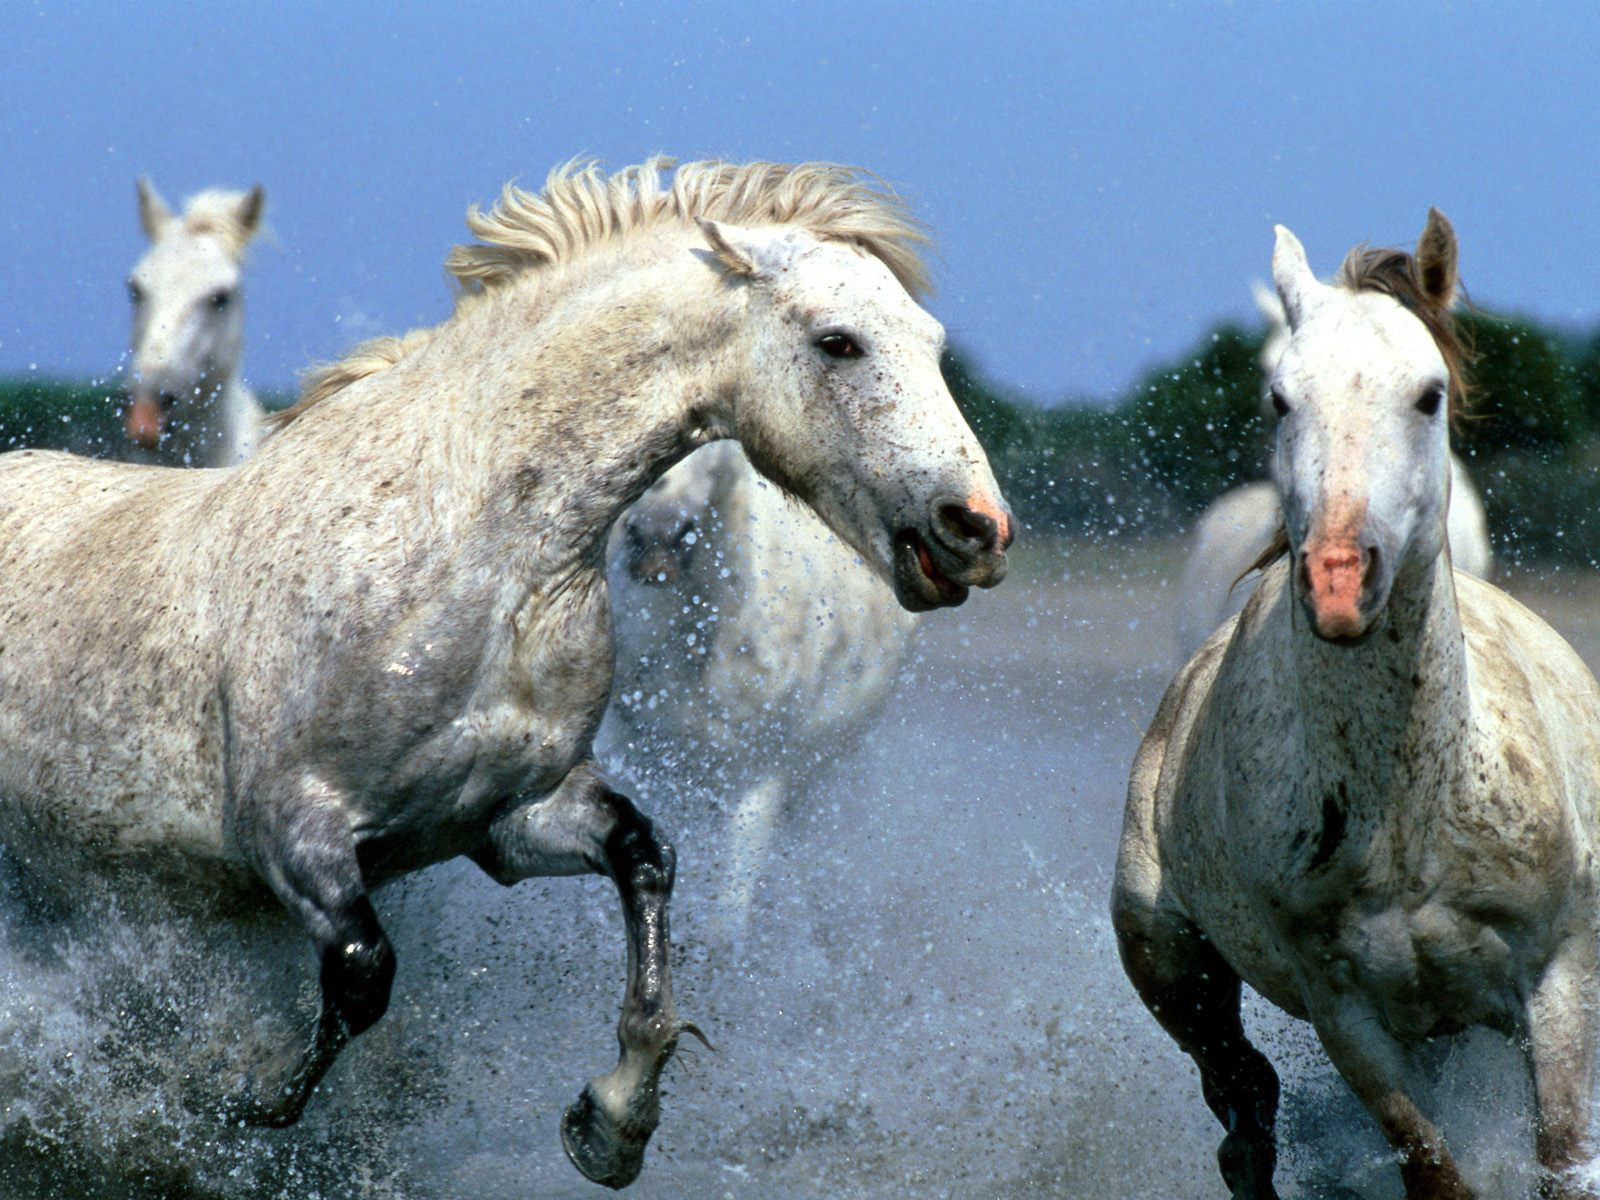 78648 download wallpaper Animals, Horses, Spray, Water, Stroll, Couple, Pair screensavers and pictures for free